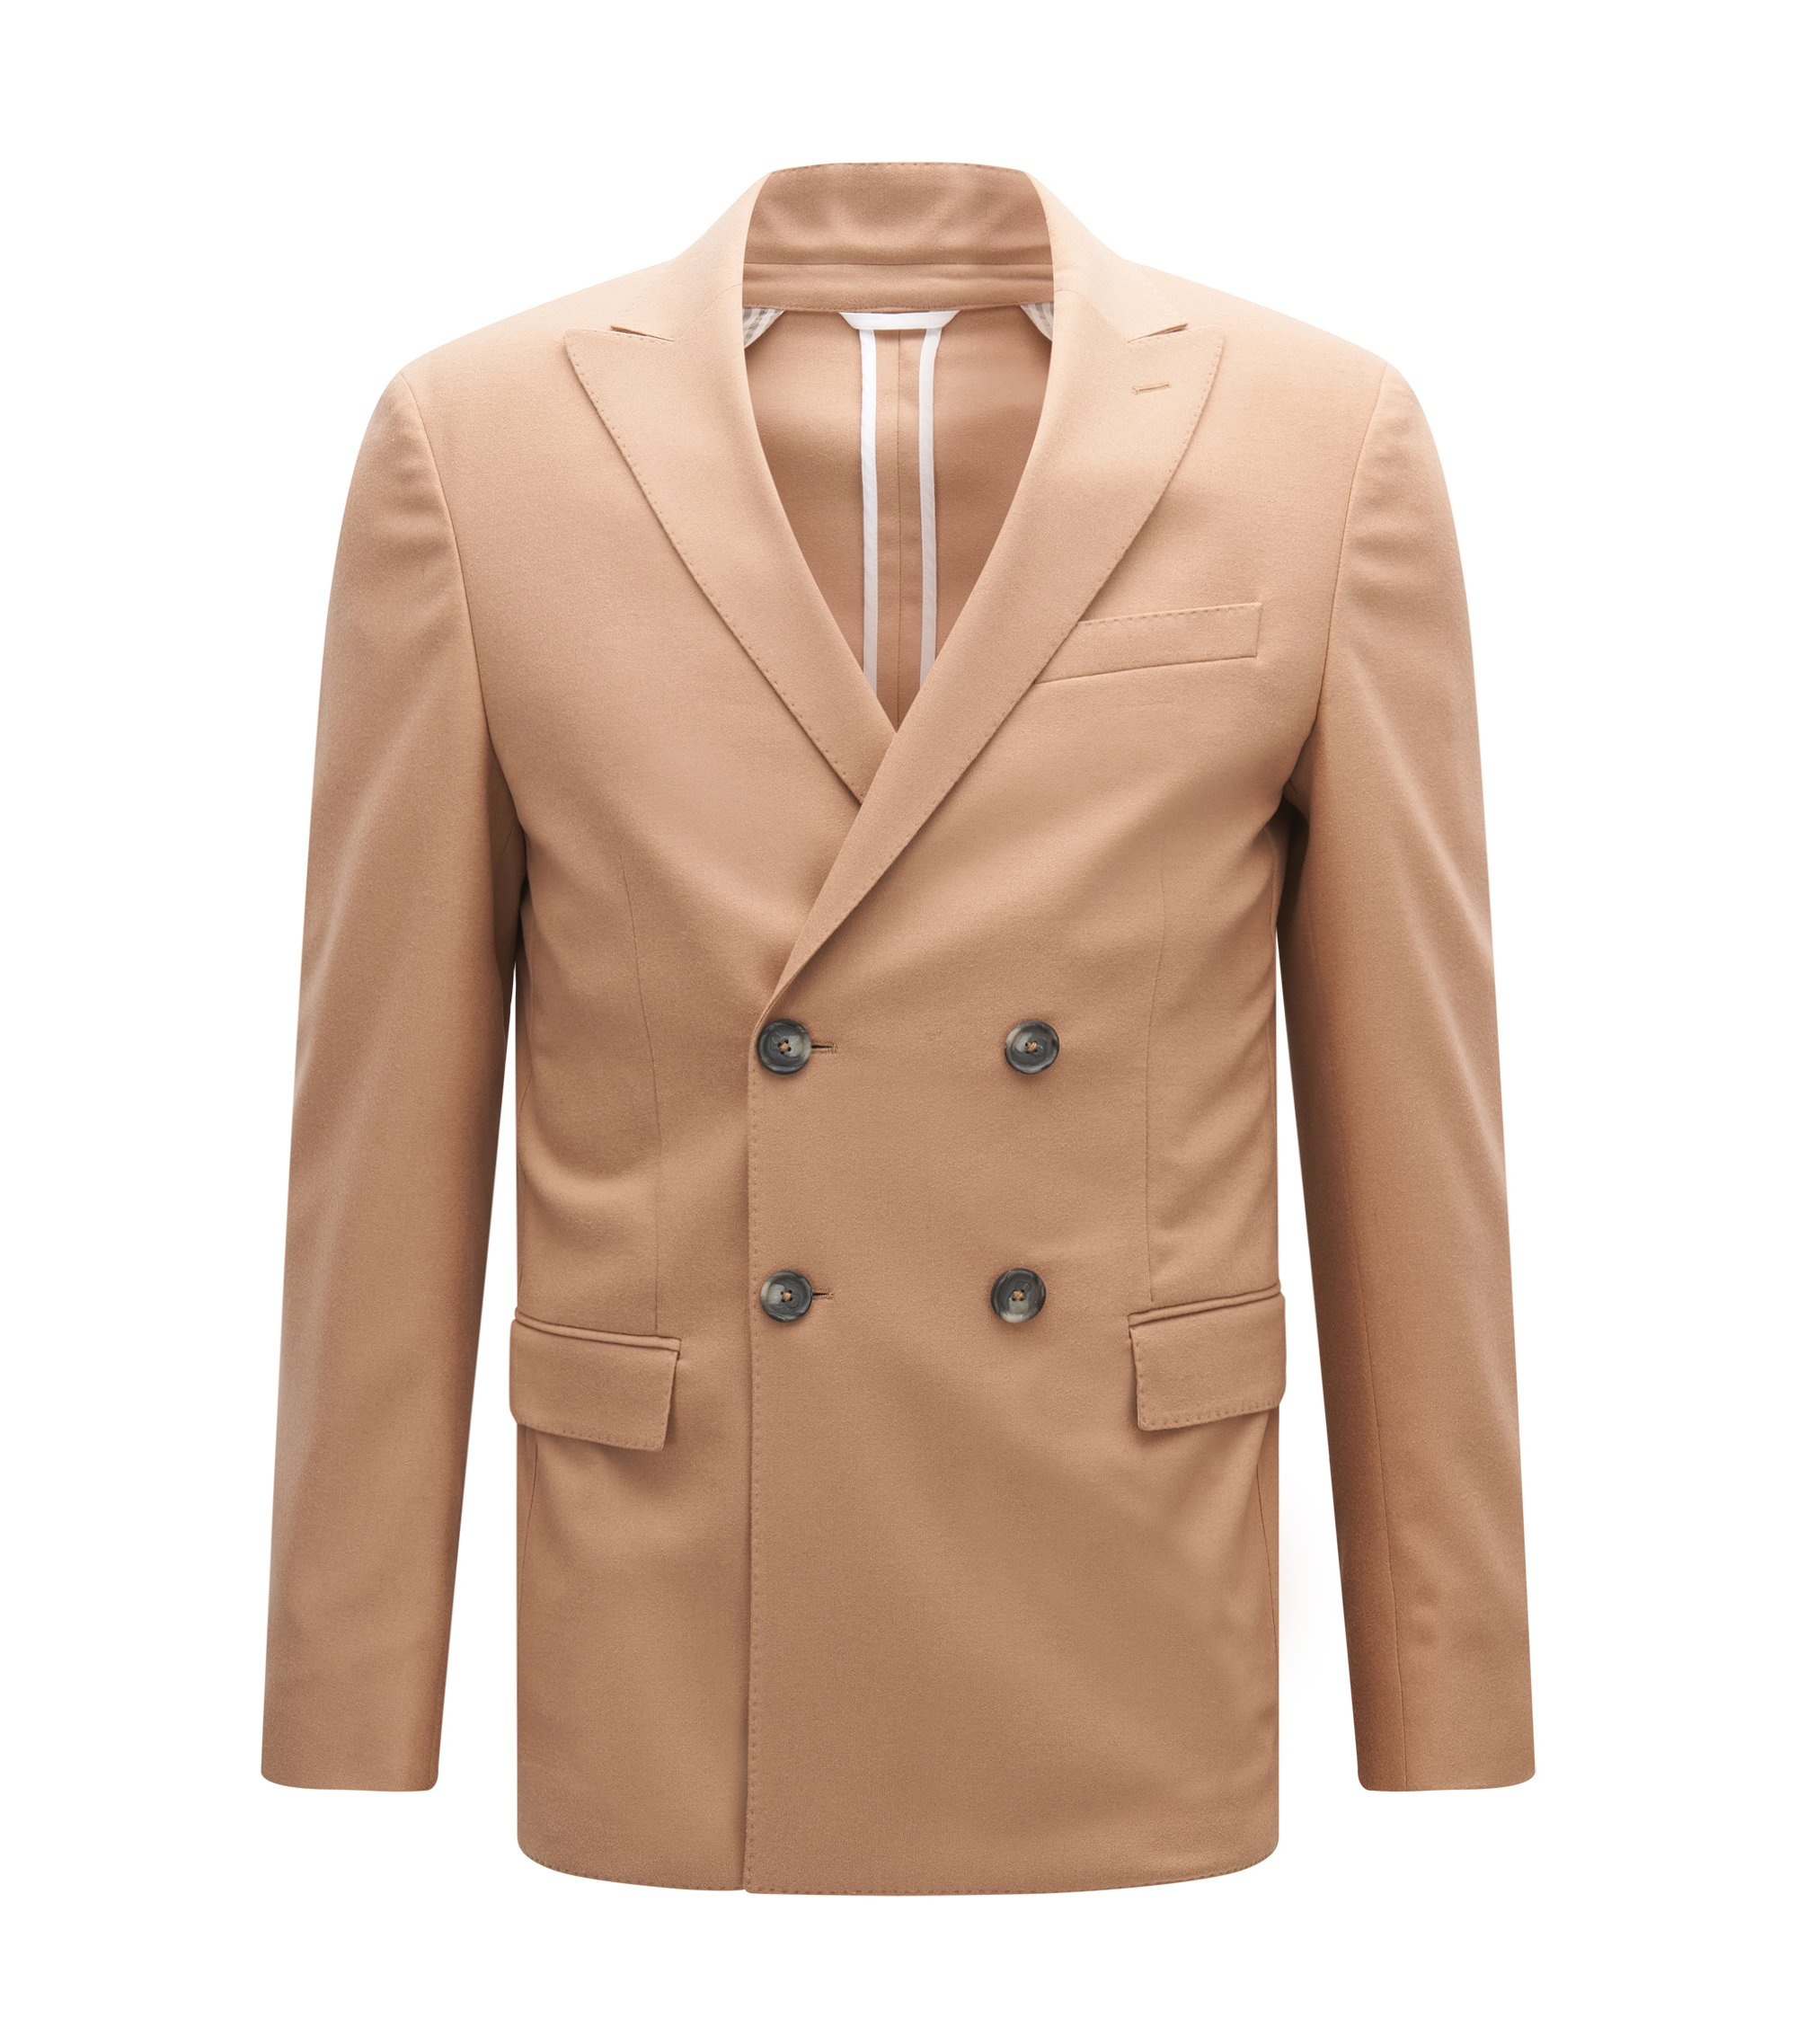 Virgin Wool Cashmere Sport Coat, Slim Fit | Namis, Beige